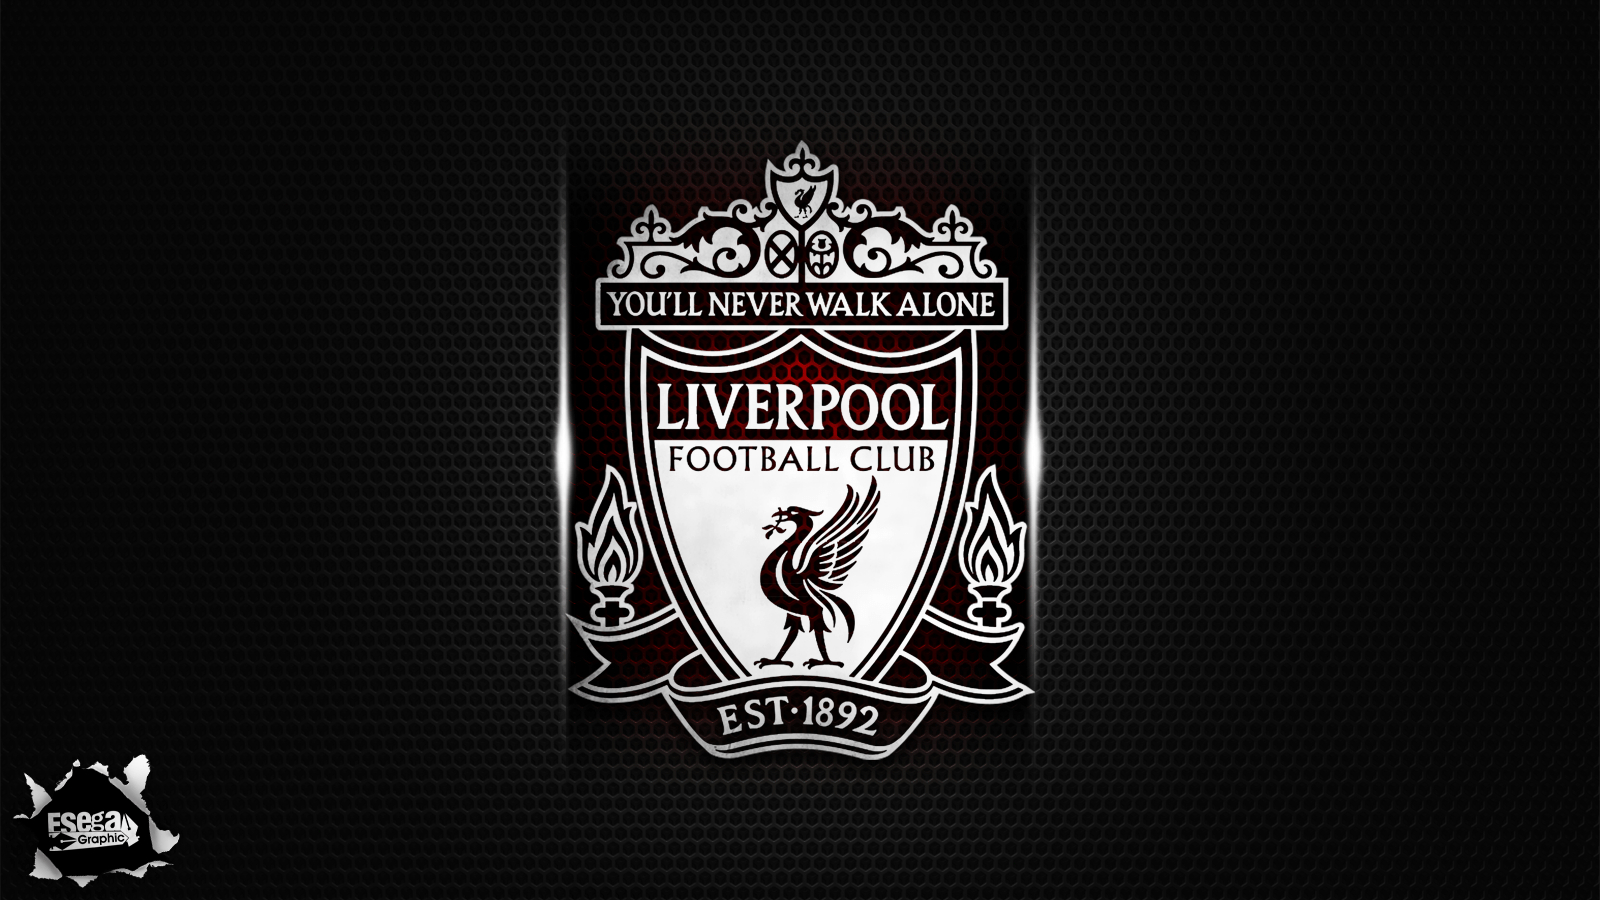 liverpool f.c wallpapers - wallpaper cave